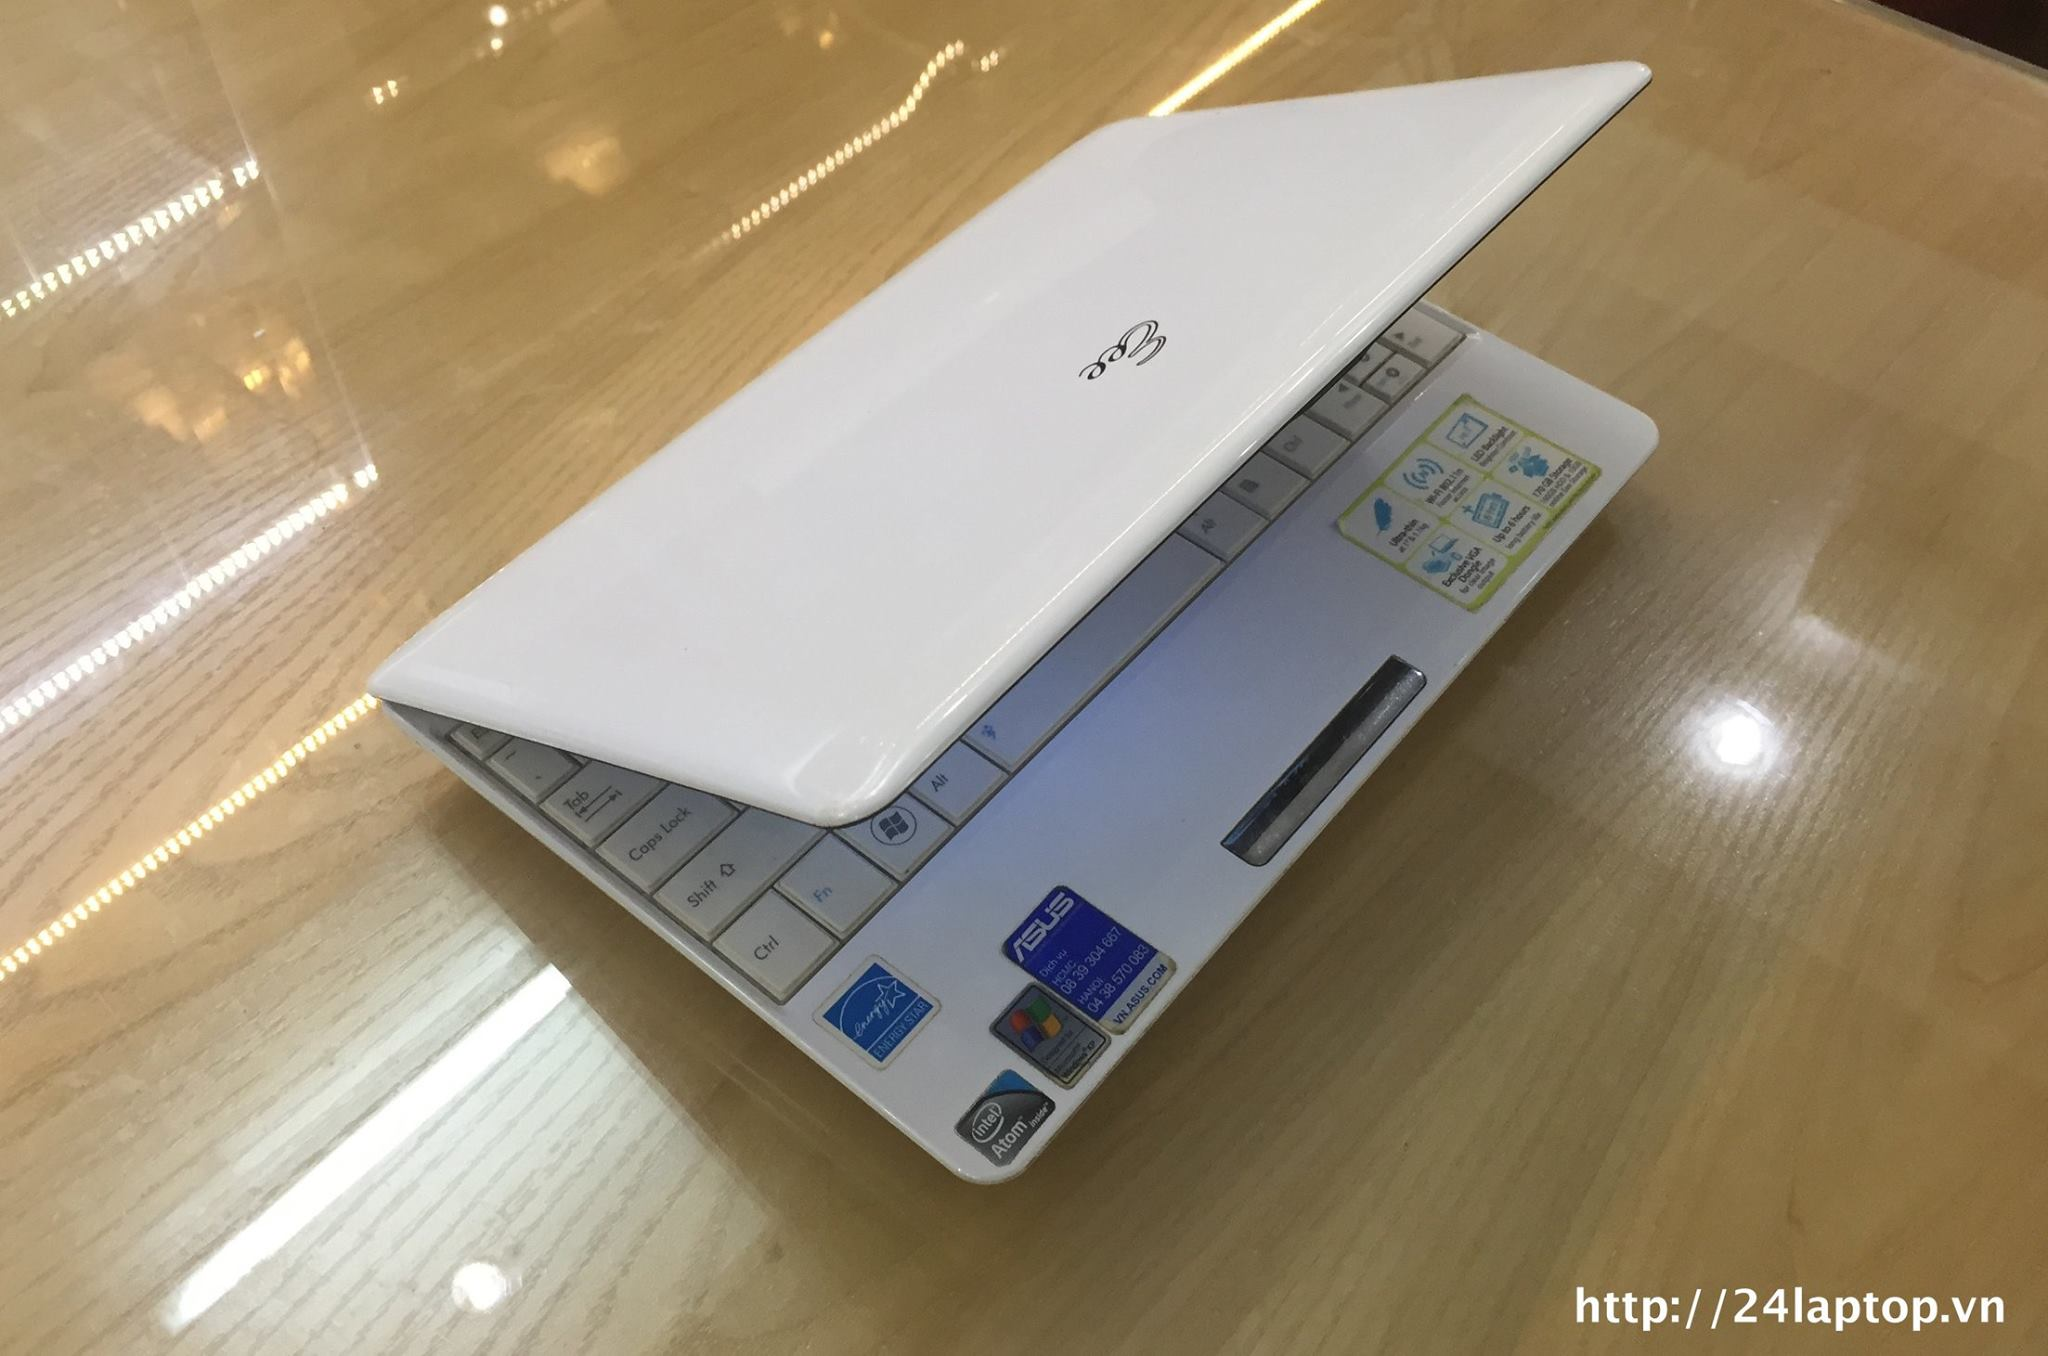 Laptop Asus EEPC 1008HA.jpg